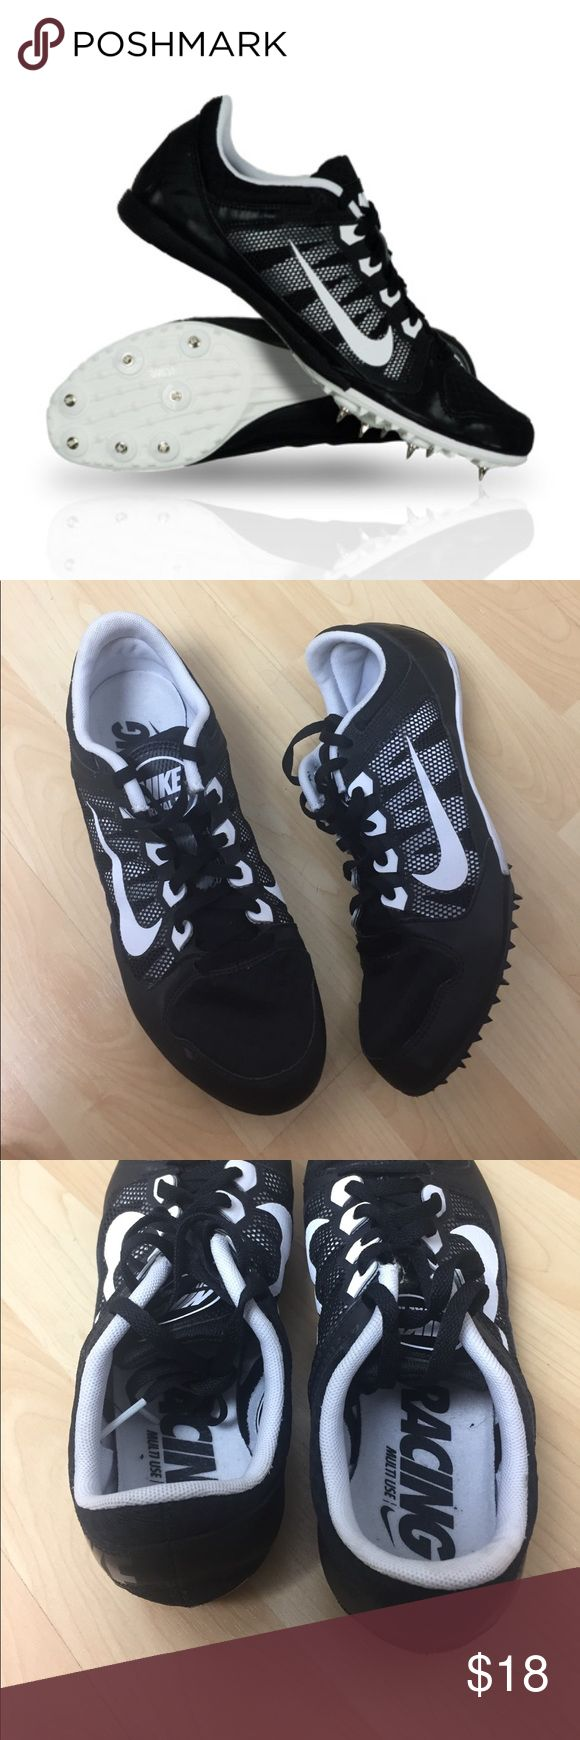 Men's Bike Track Racing Shoes Used once, great condition. Black and white. Men's 7.5 Nike Shoes Athletic Shoes